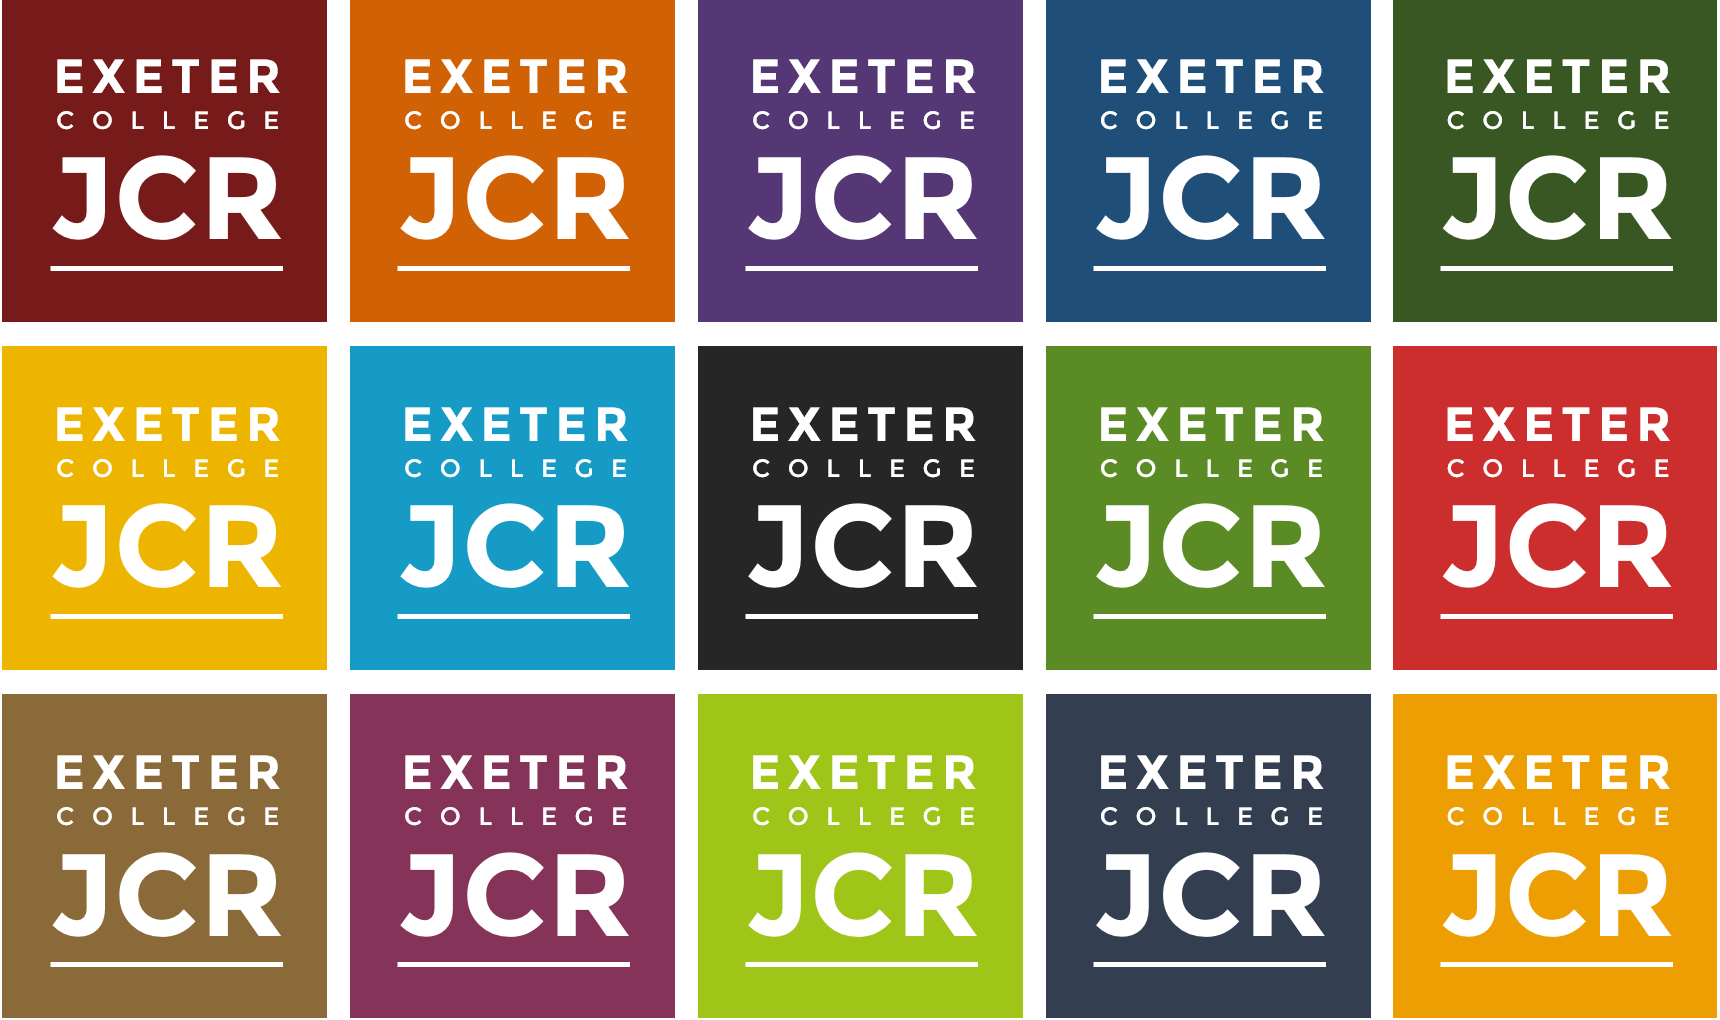 Exeter College JCR